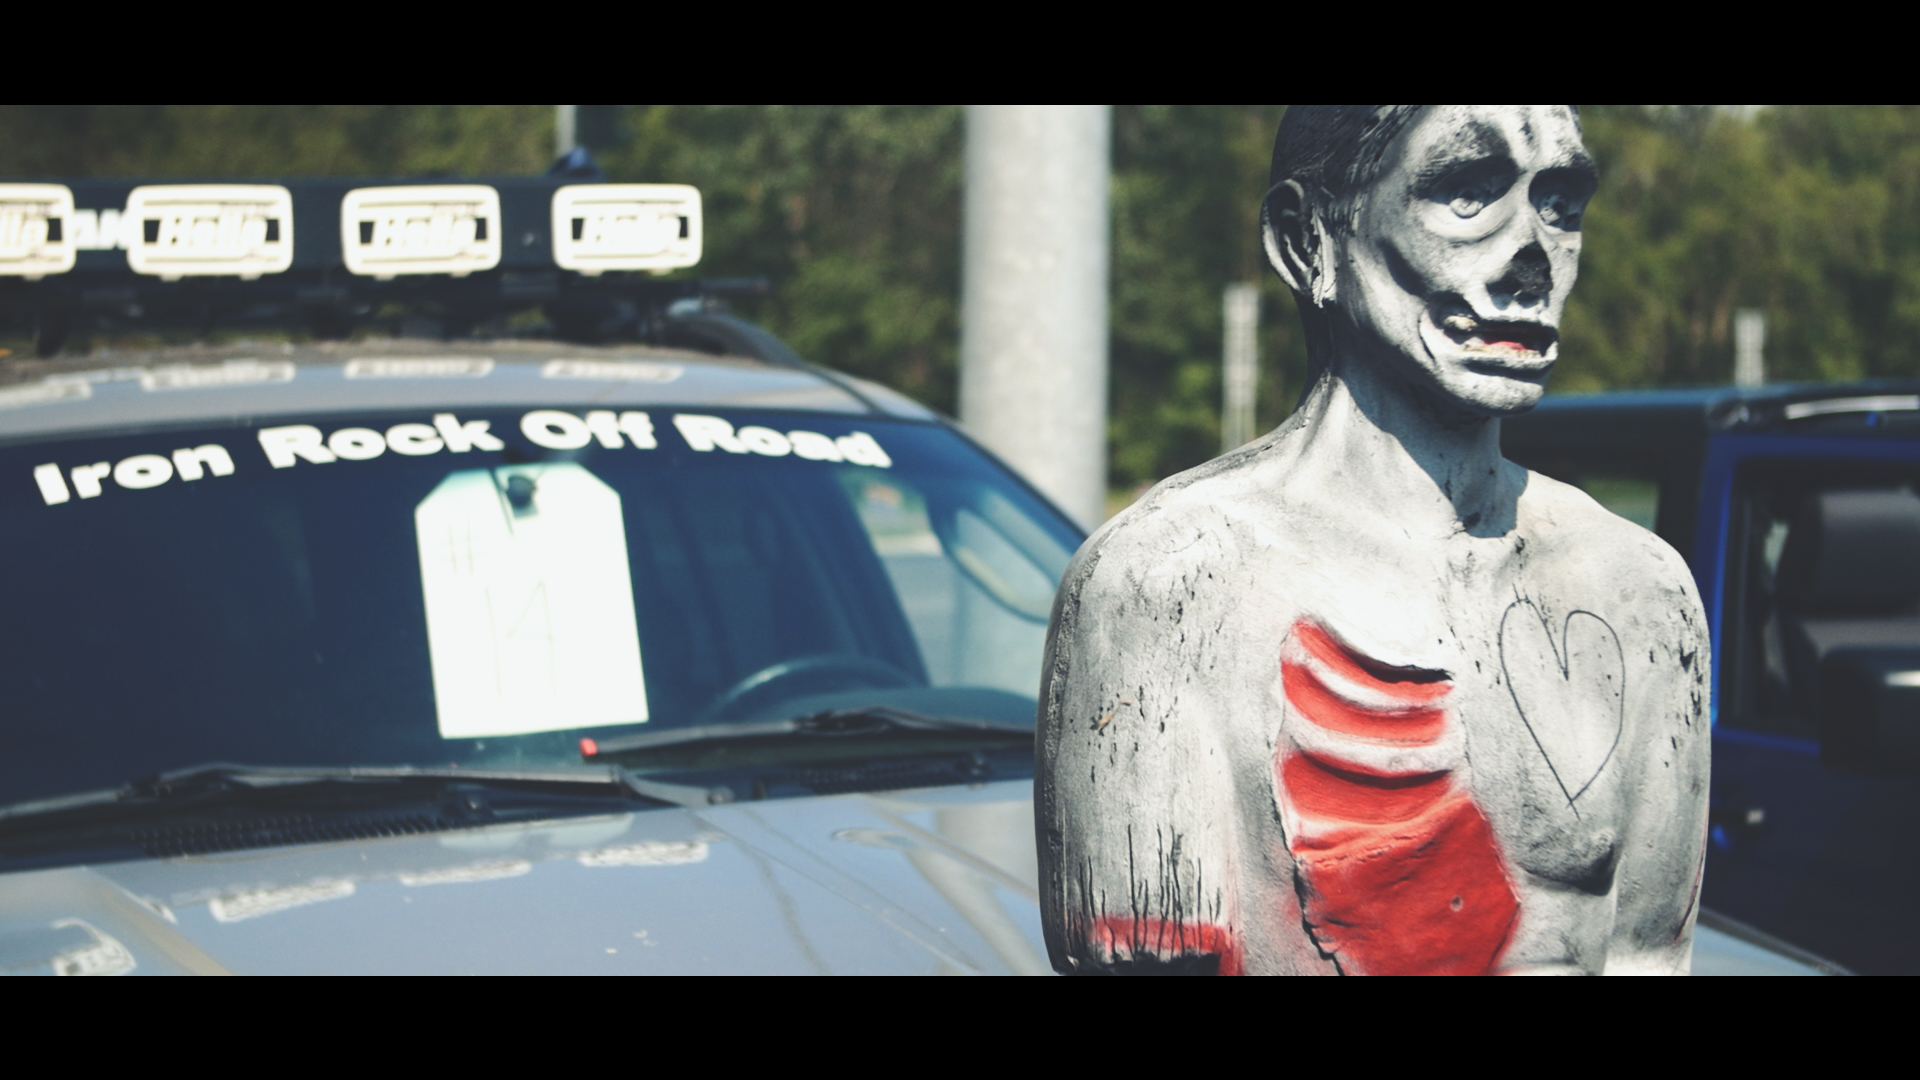 I wish this fake zombie hood ornament looked more like a decomposing Nicolas Cage.